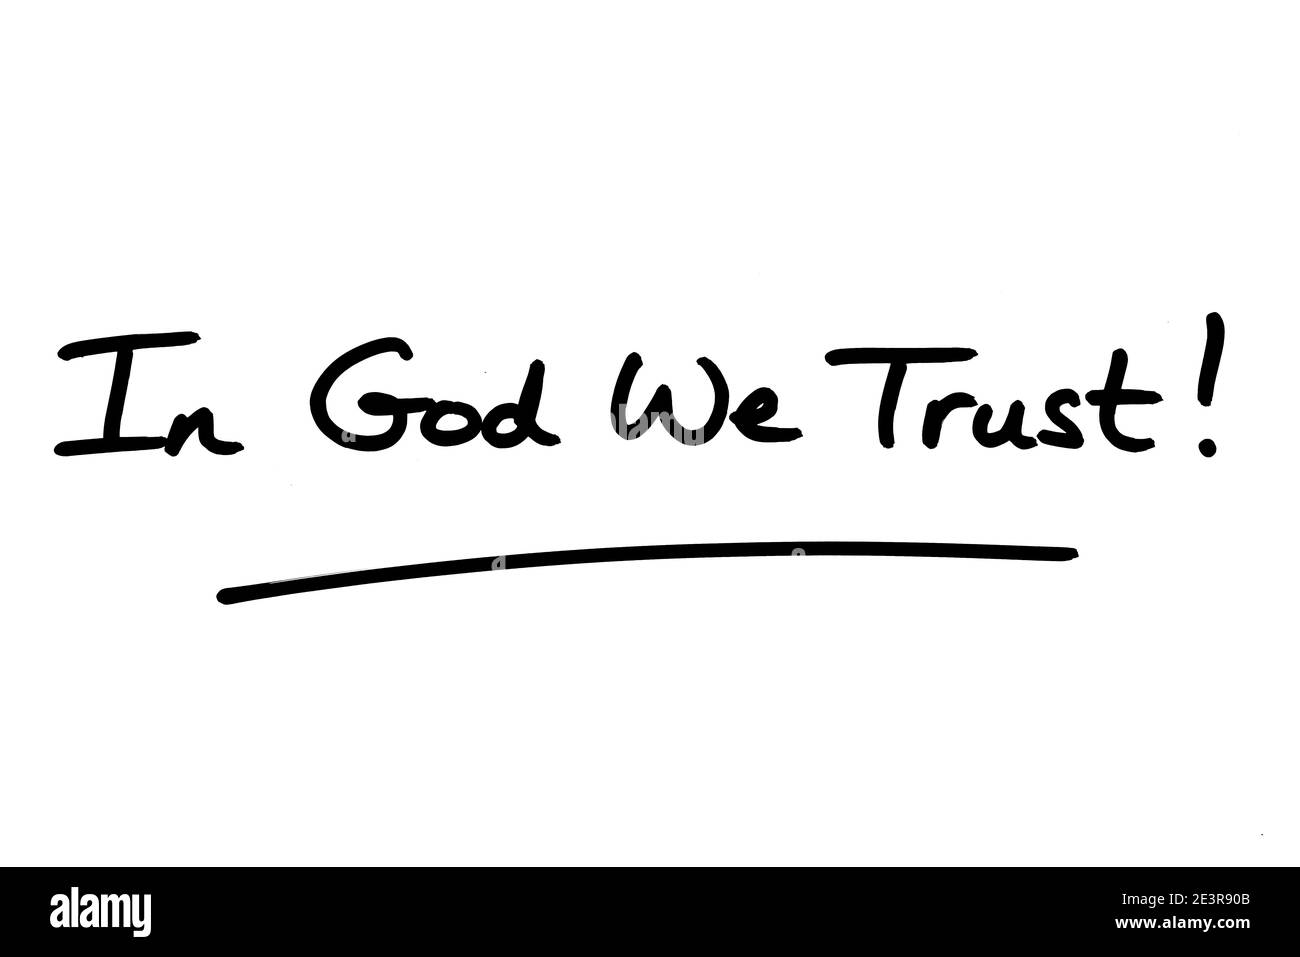 In God We Trust! handwritten on a white background. Stock Photo